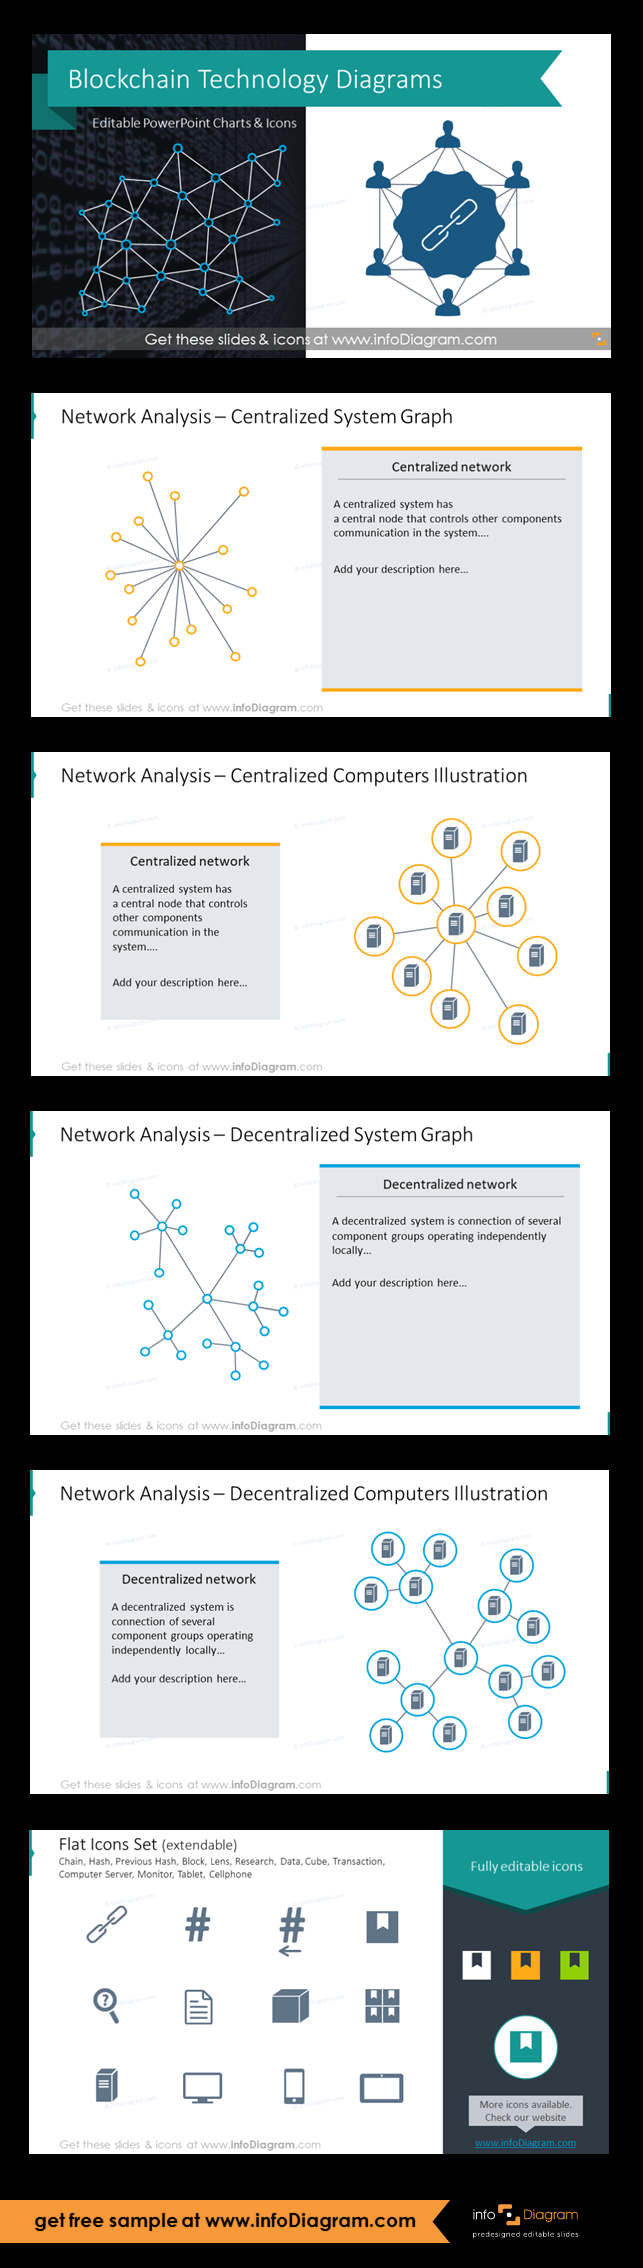 Blockchain Presentation Modern Diagrams Powerpoint Template And Graphics To Explain Block Chain Technology Benefits Applications Distributed Ledger Networks V Presentation Templates Powerpoint Design Templates